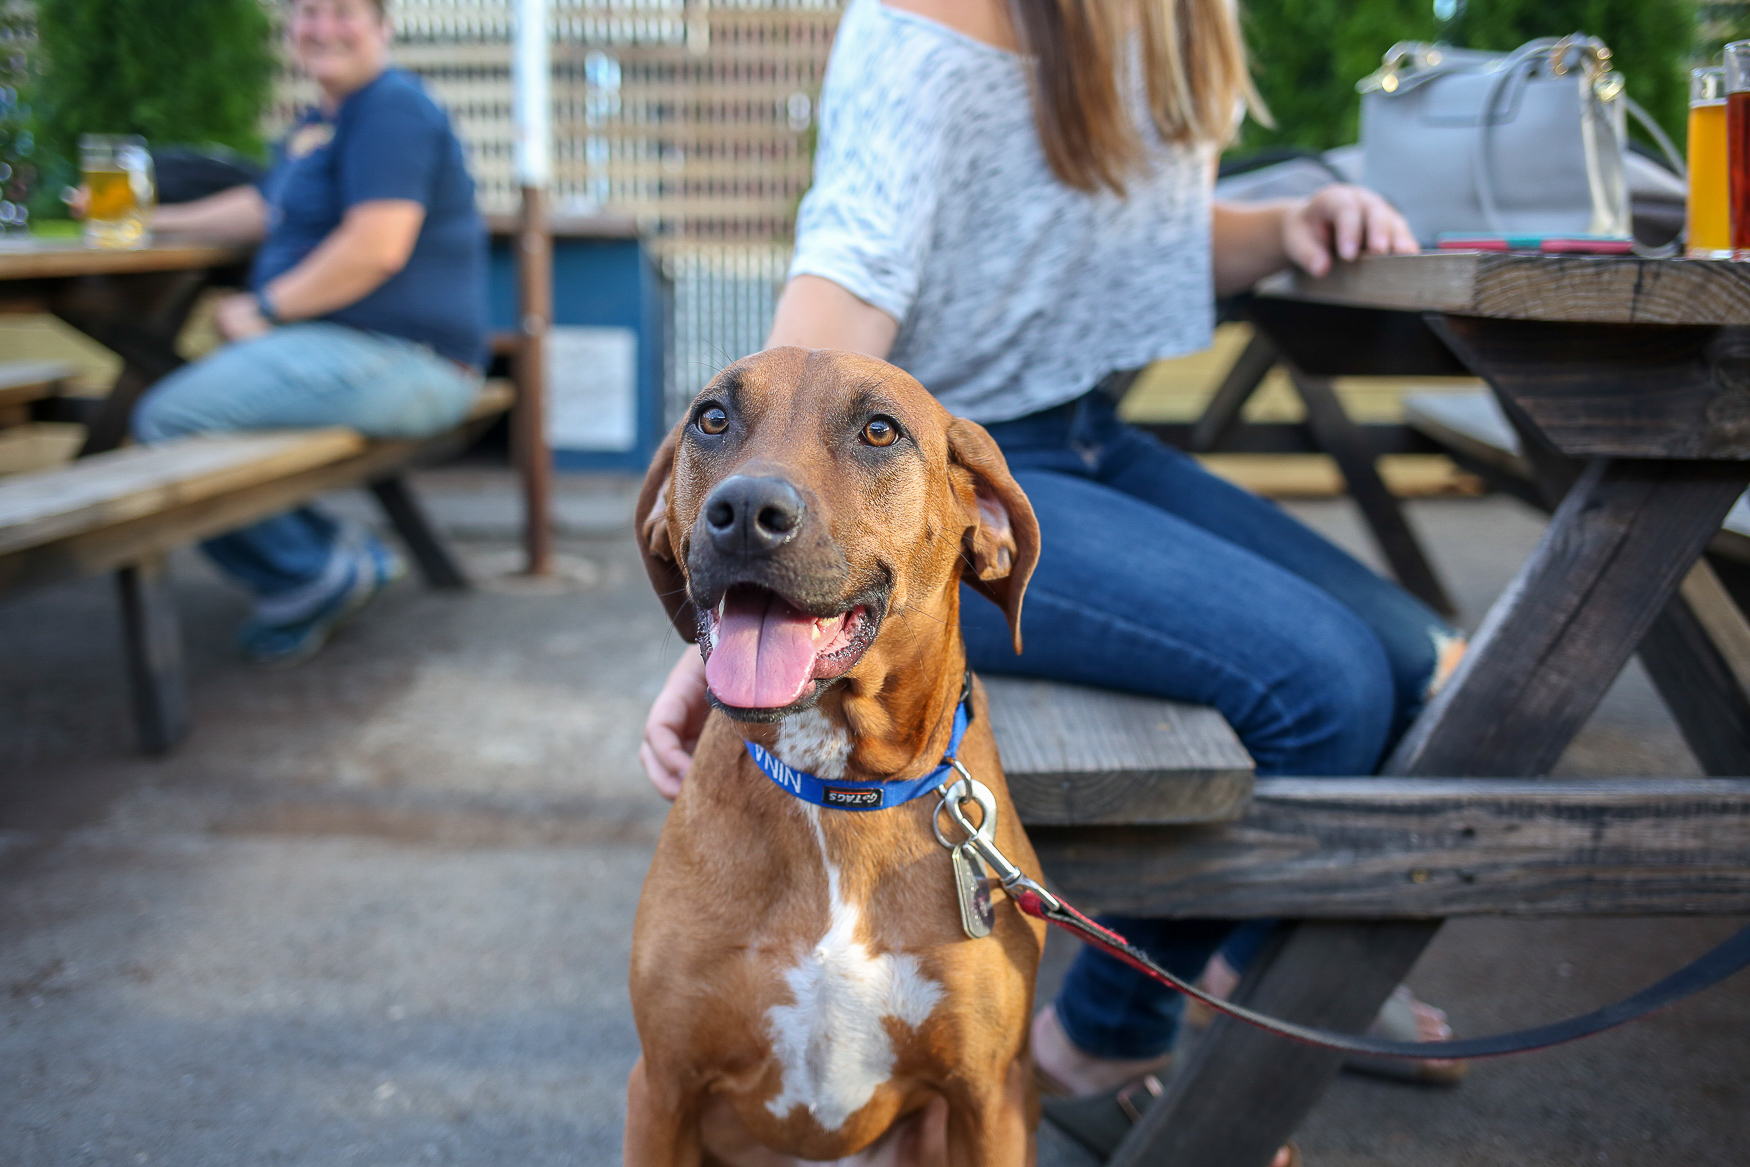 The Midlands Beer Garden is hosting a pup-up bar for a good cause. From 1 p.m. to 4 p.m., dogs will be be delivering beer as your paw-tenders and City Dogs will be roaming around with adoptable pups. Plus, you can submit a photo of your own dog to Adventure Dogs for the chance to have your pup featured on the Devils Backbone's new Gold Leaf can. Admission is free. (Amanda Andrade-Rhoades/DC Refined)